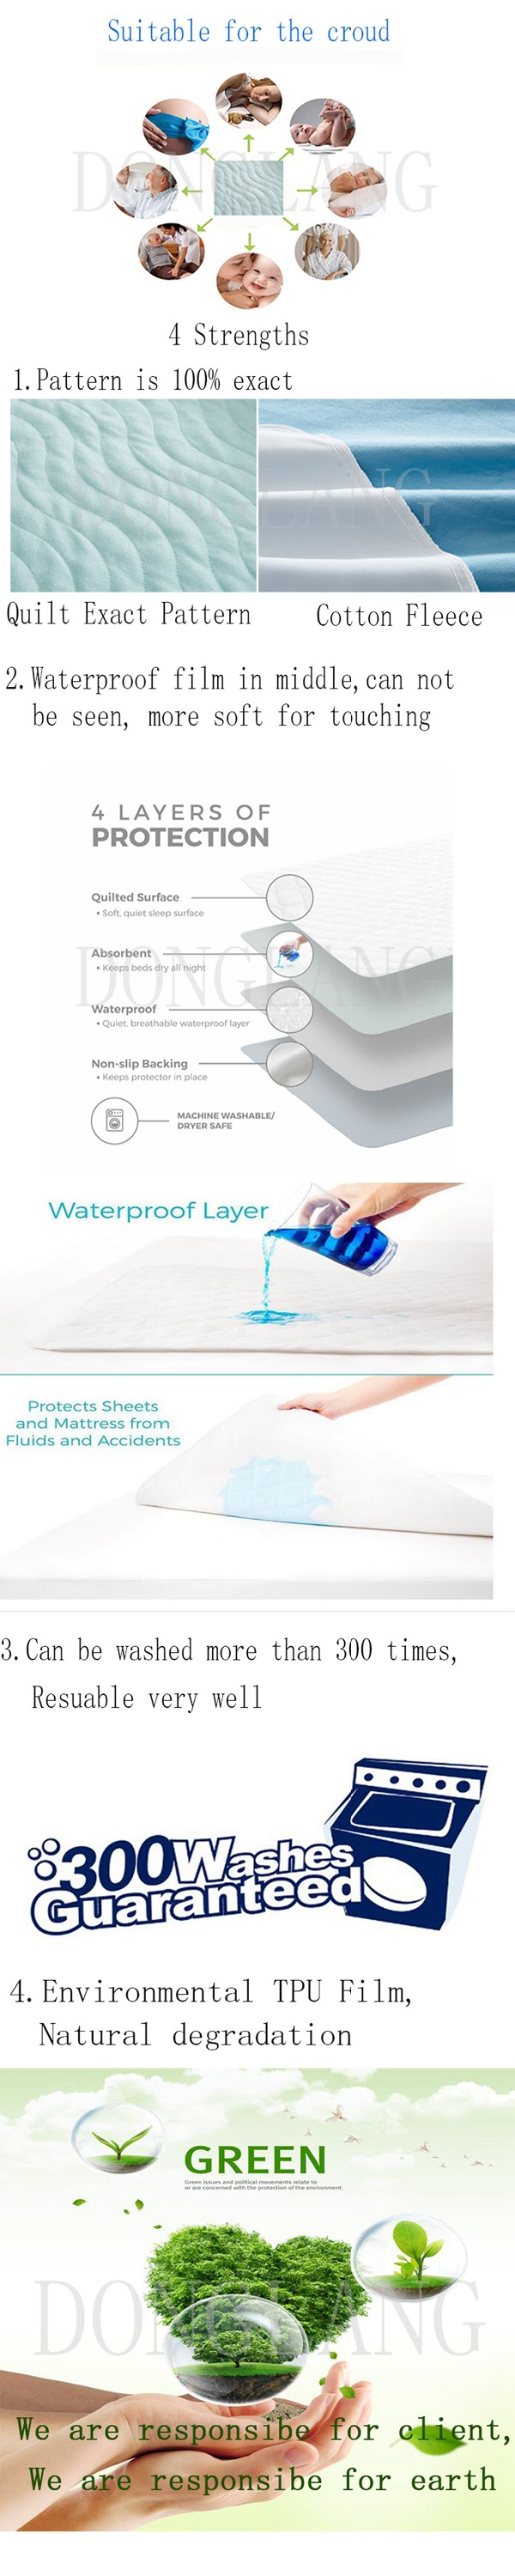 4 Layer Absorbent Reusable Adult Waterproof Washable Baby Underpad